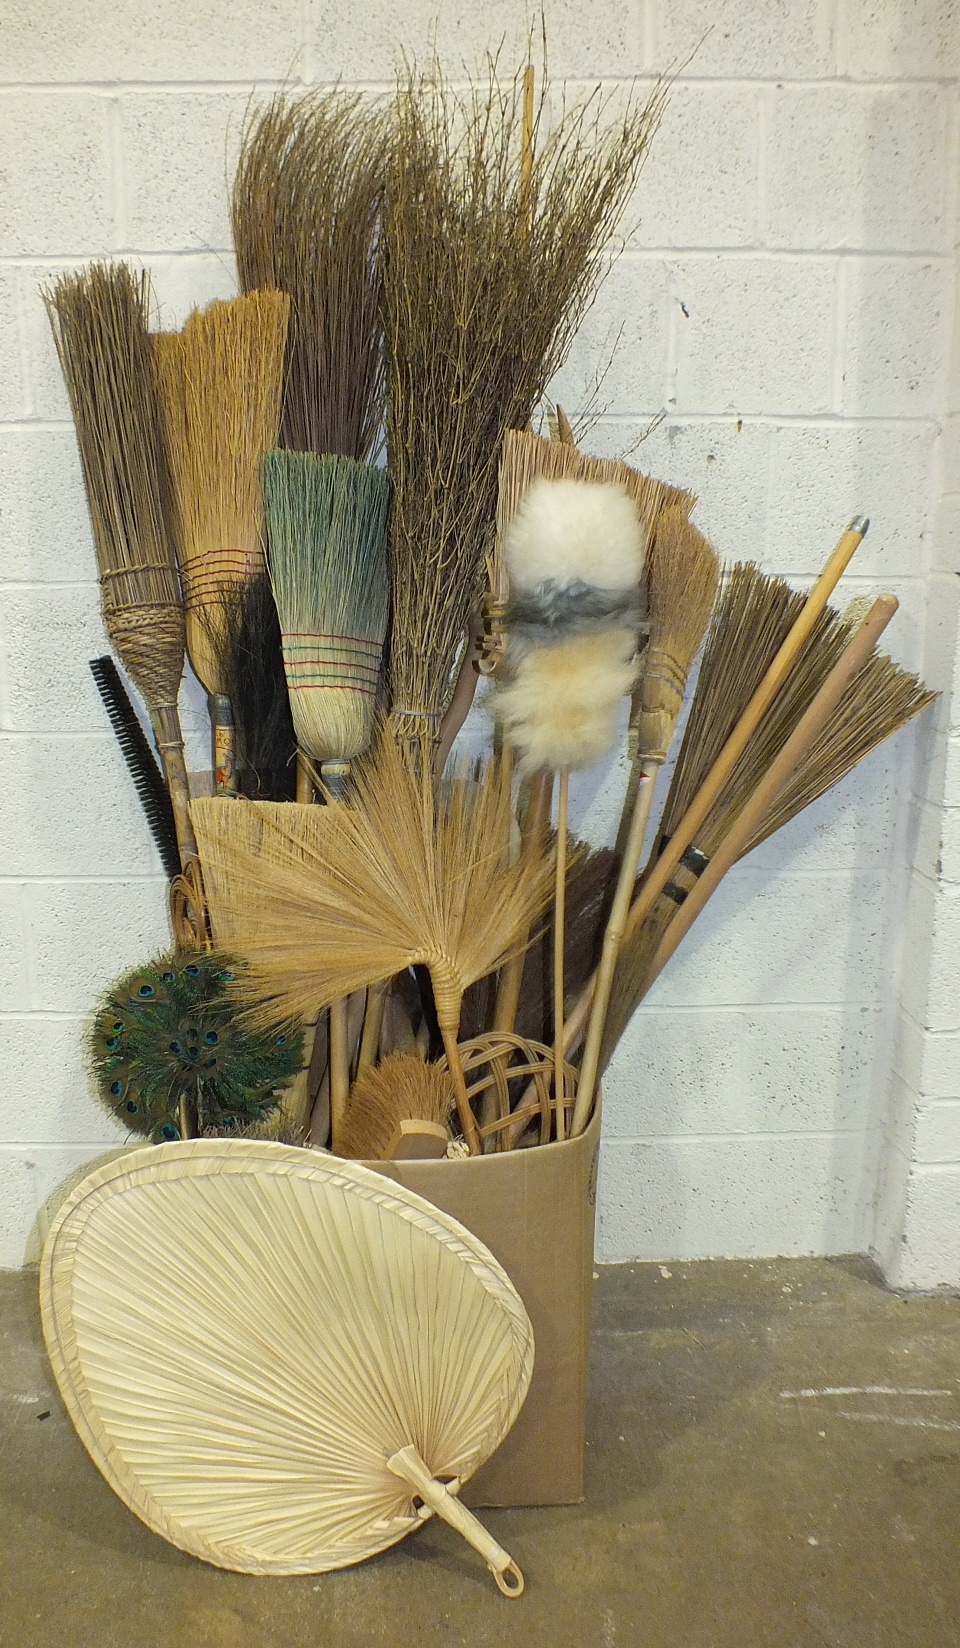 Lot 40 - A large and unusual collection of brushes made from natural materials, including besoms, hard